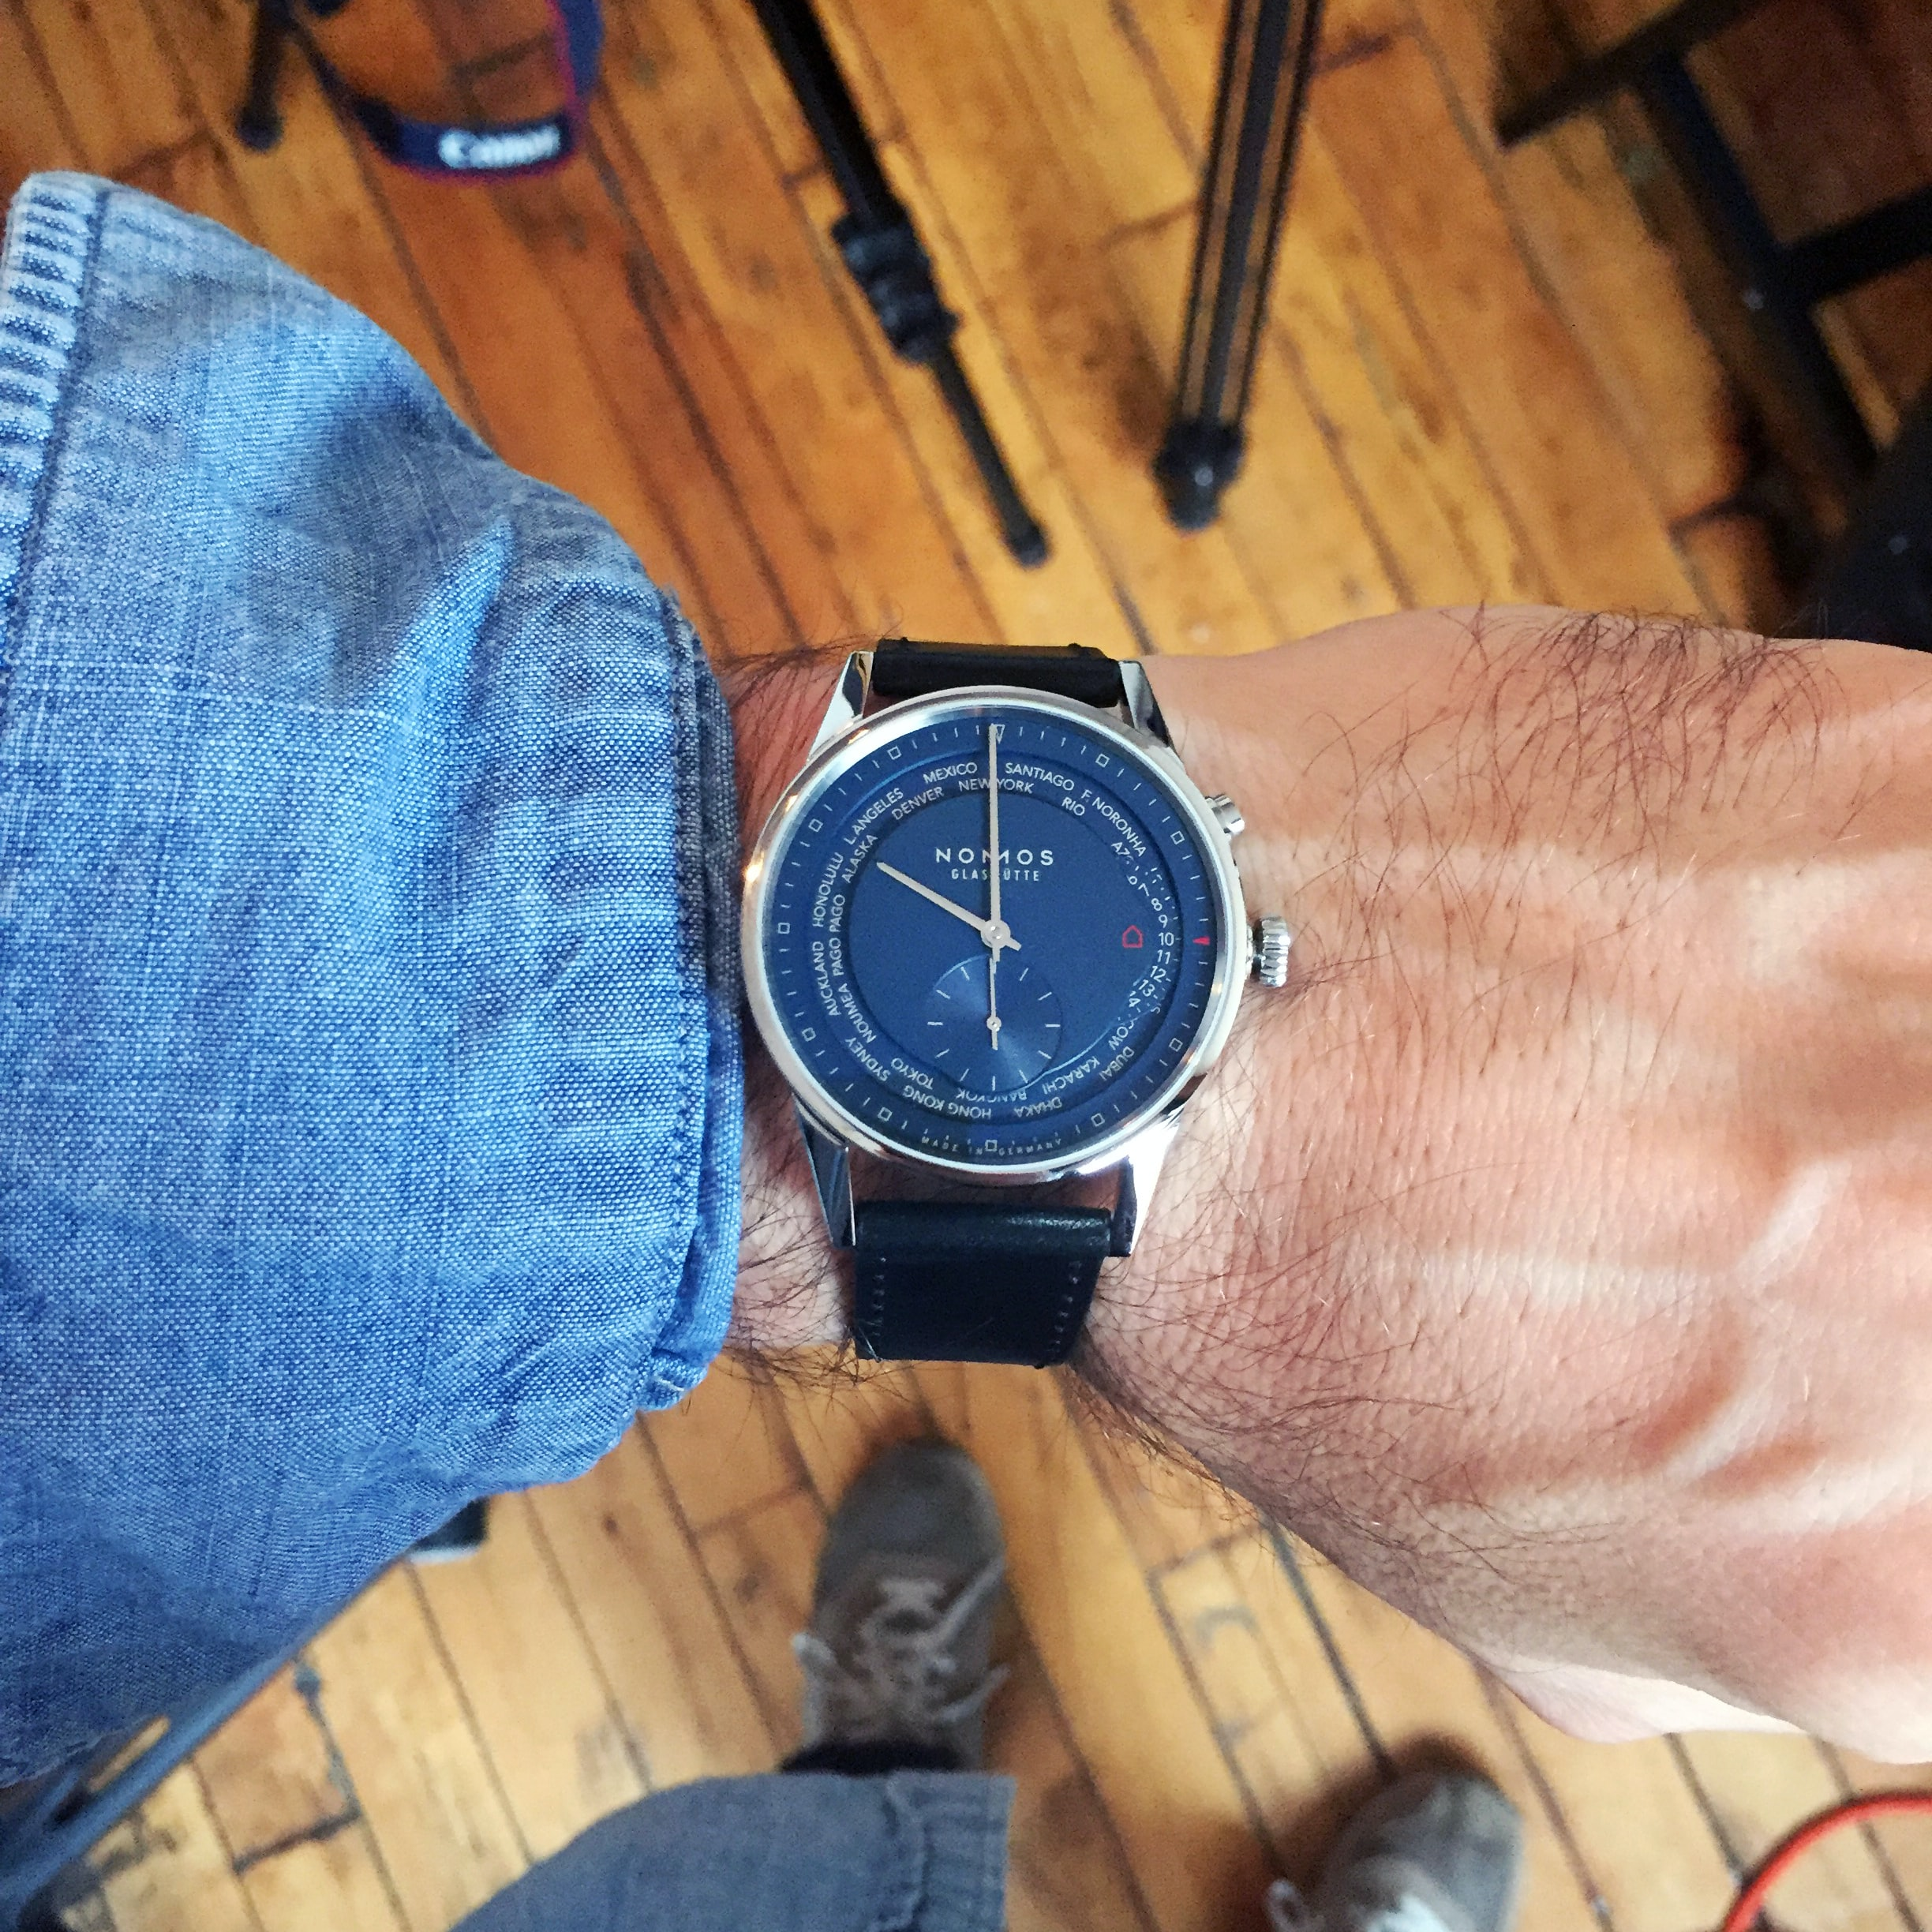 The Watch I Wore The Most In 2016, By Members Of The HODINKEE Team The Watch I Wore The Most In 2016, By Members Of The HODINKEE Team IMG 2058